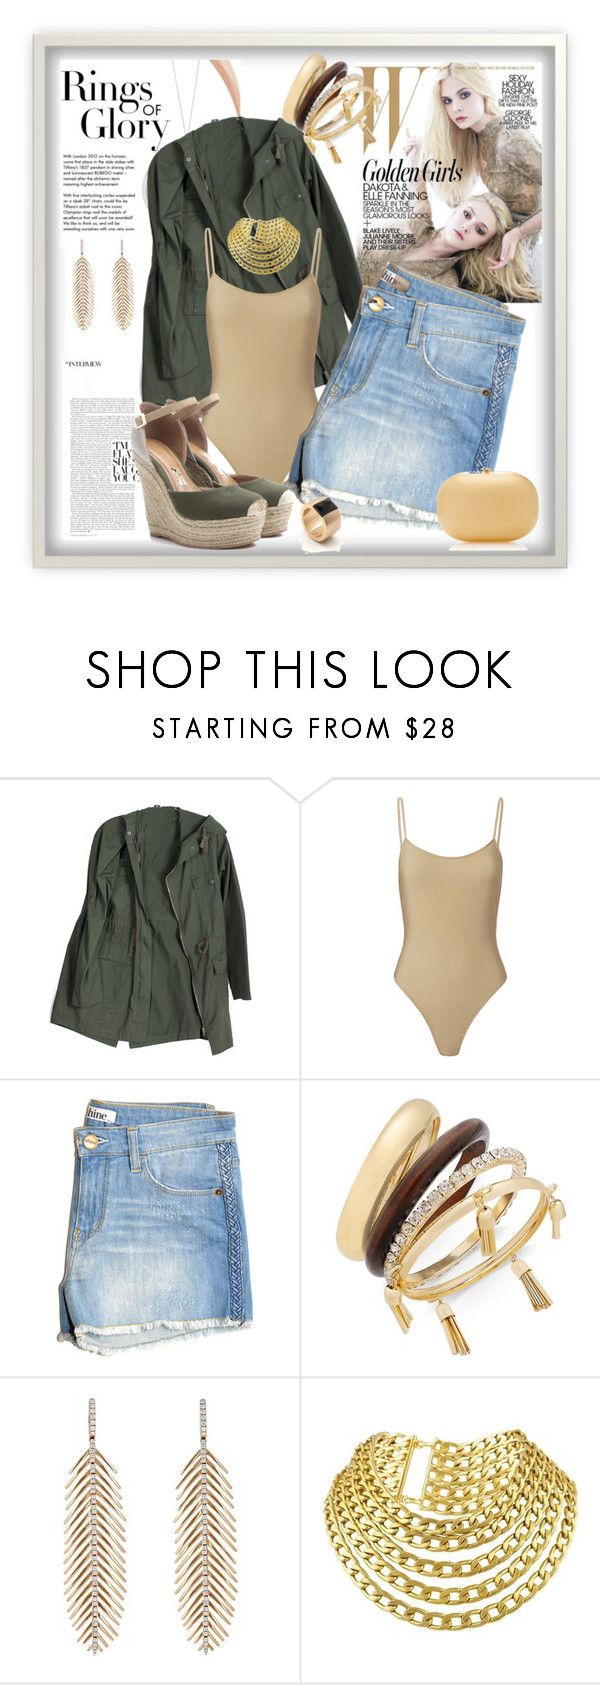 """""""Sem título #4401"""" by mr-1 ❤ liked on Polyvore featuring Tiffany & Co., Only Hearts, Shine, Thalia Sodi, Sidney Garber, Chanel and Jeffrey Levinson"""